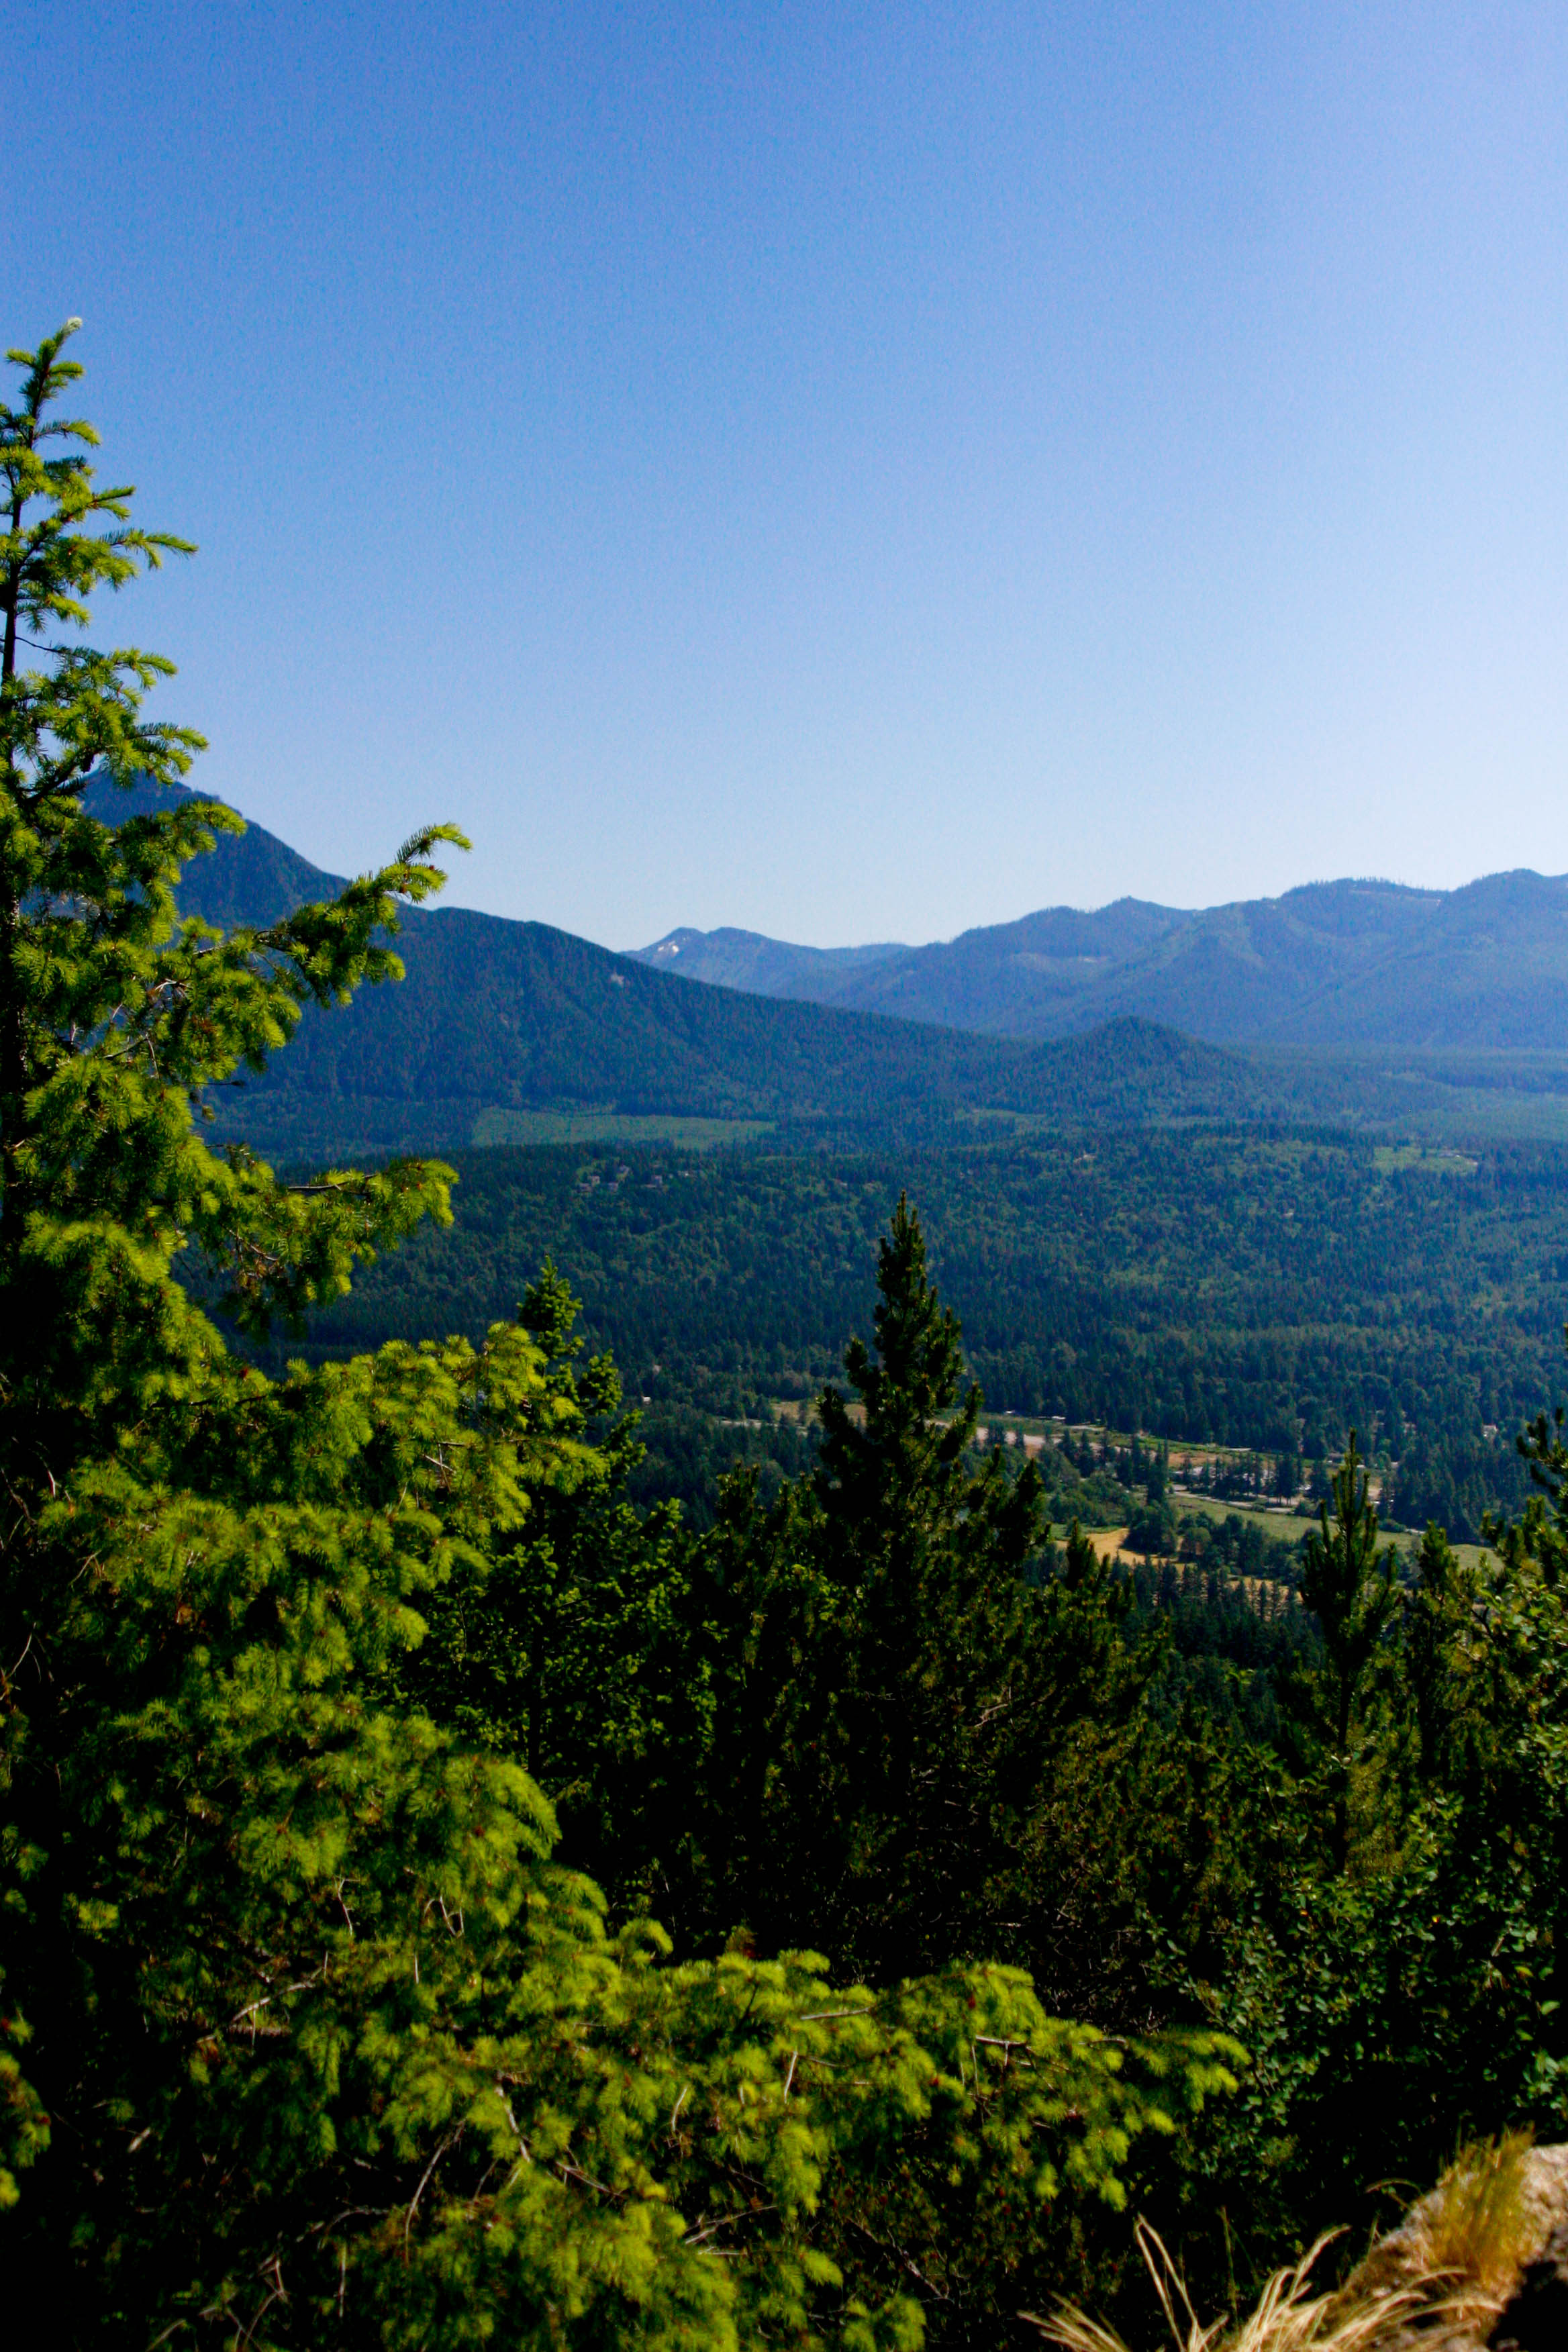 Little Si Round Trip – 4.7 miles Elevation Gain – 1,300 ft Difficulty – Easy to moderate depending on skill level  Directions: Traveling on I-90 East, approaching North Bend, take exit for 436th Ave SE and turn left. Head 0.5 miles on 436 Ave SE and take a left on SE North Bend Way. Proceed 0.3 miles and turn right on SE Mount Si Road. The main parking lot for Little Si will be 0.4 miles on your left as the road straightens out after the bend (if you pass 439 Pl SE or 440 PL SE, you have driven too far). There is an overflow parking lot west of the main lot tucked into SE Mt Si Rd and 434 Ave SE. There is a trail connecting the two. Be warned that both lots may be full on weekends. There are two toilets in the main parking just off the trailhead. Discover Pass is required.